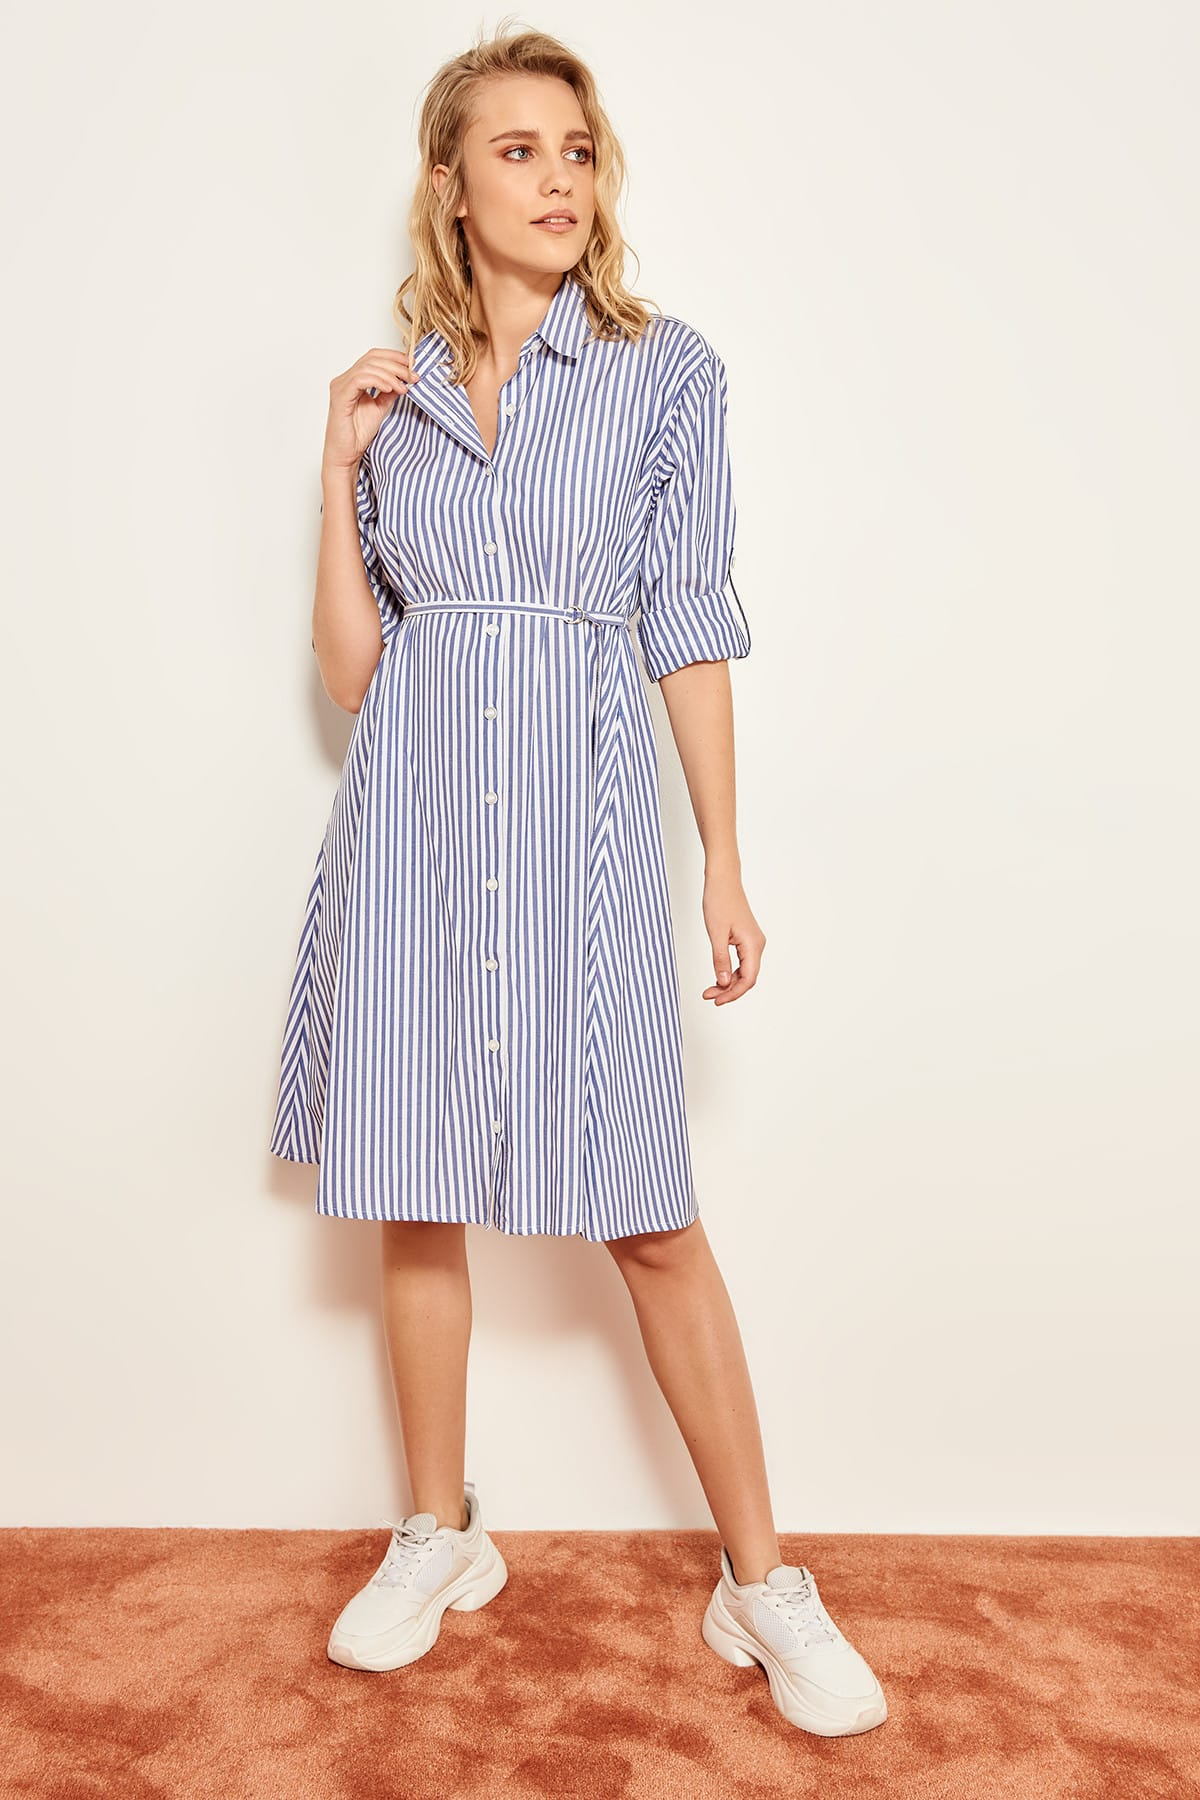 7763be608f831 Trendyol Blue Red Striped Dress TWOSS19XW0008-in Dresses from ...